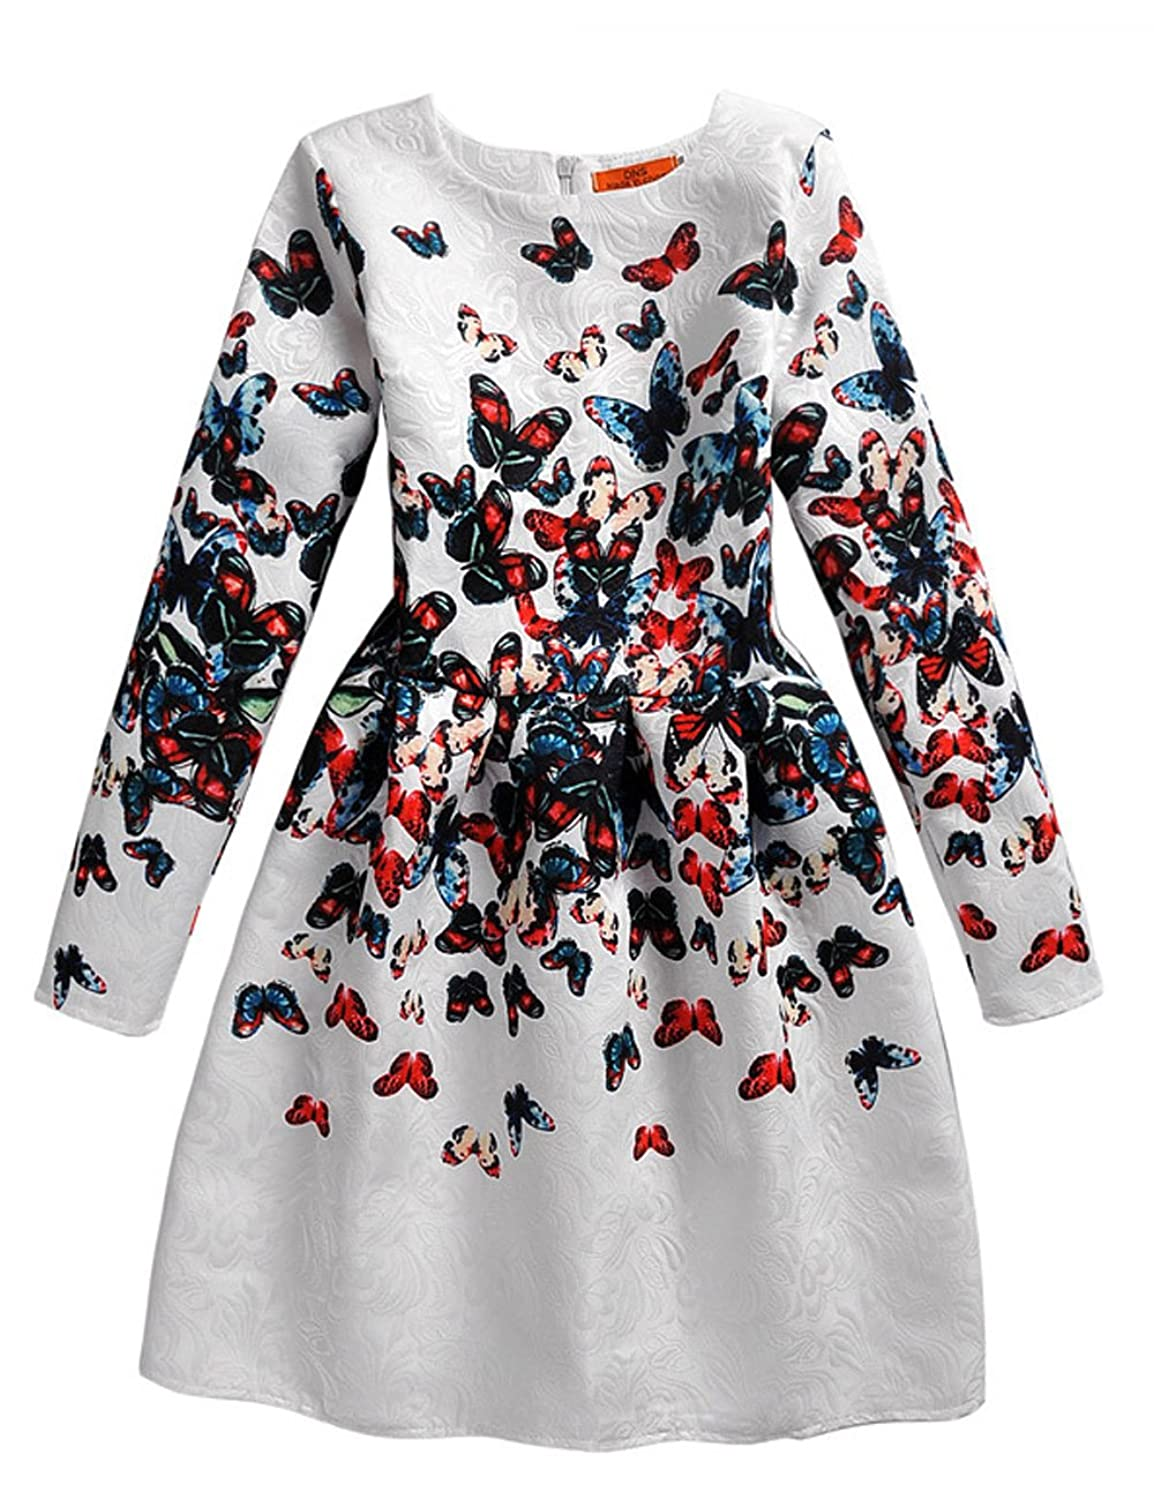 7cd25c957 21KIDS Fashion Butterfly Print Girl Wedding Party Autumn Long Sleeve Dresses